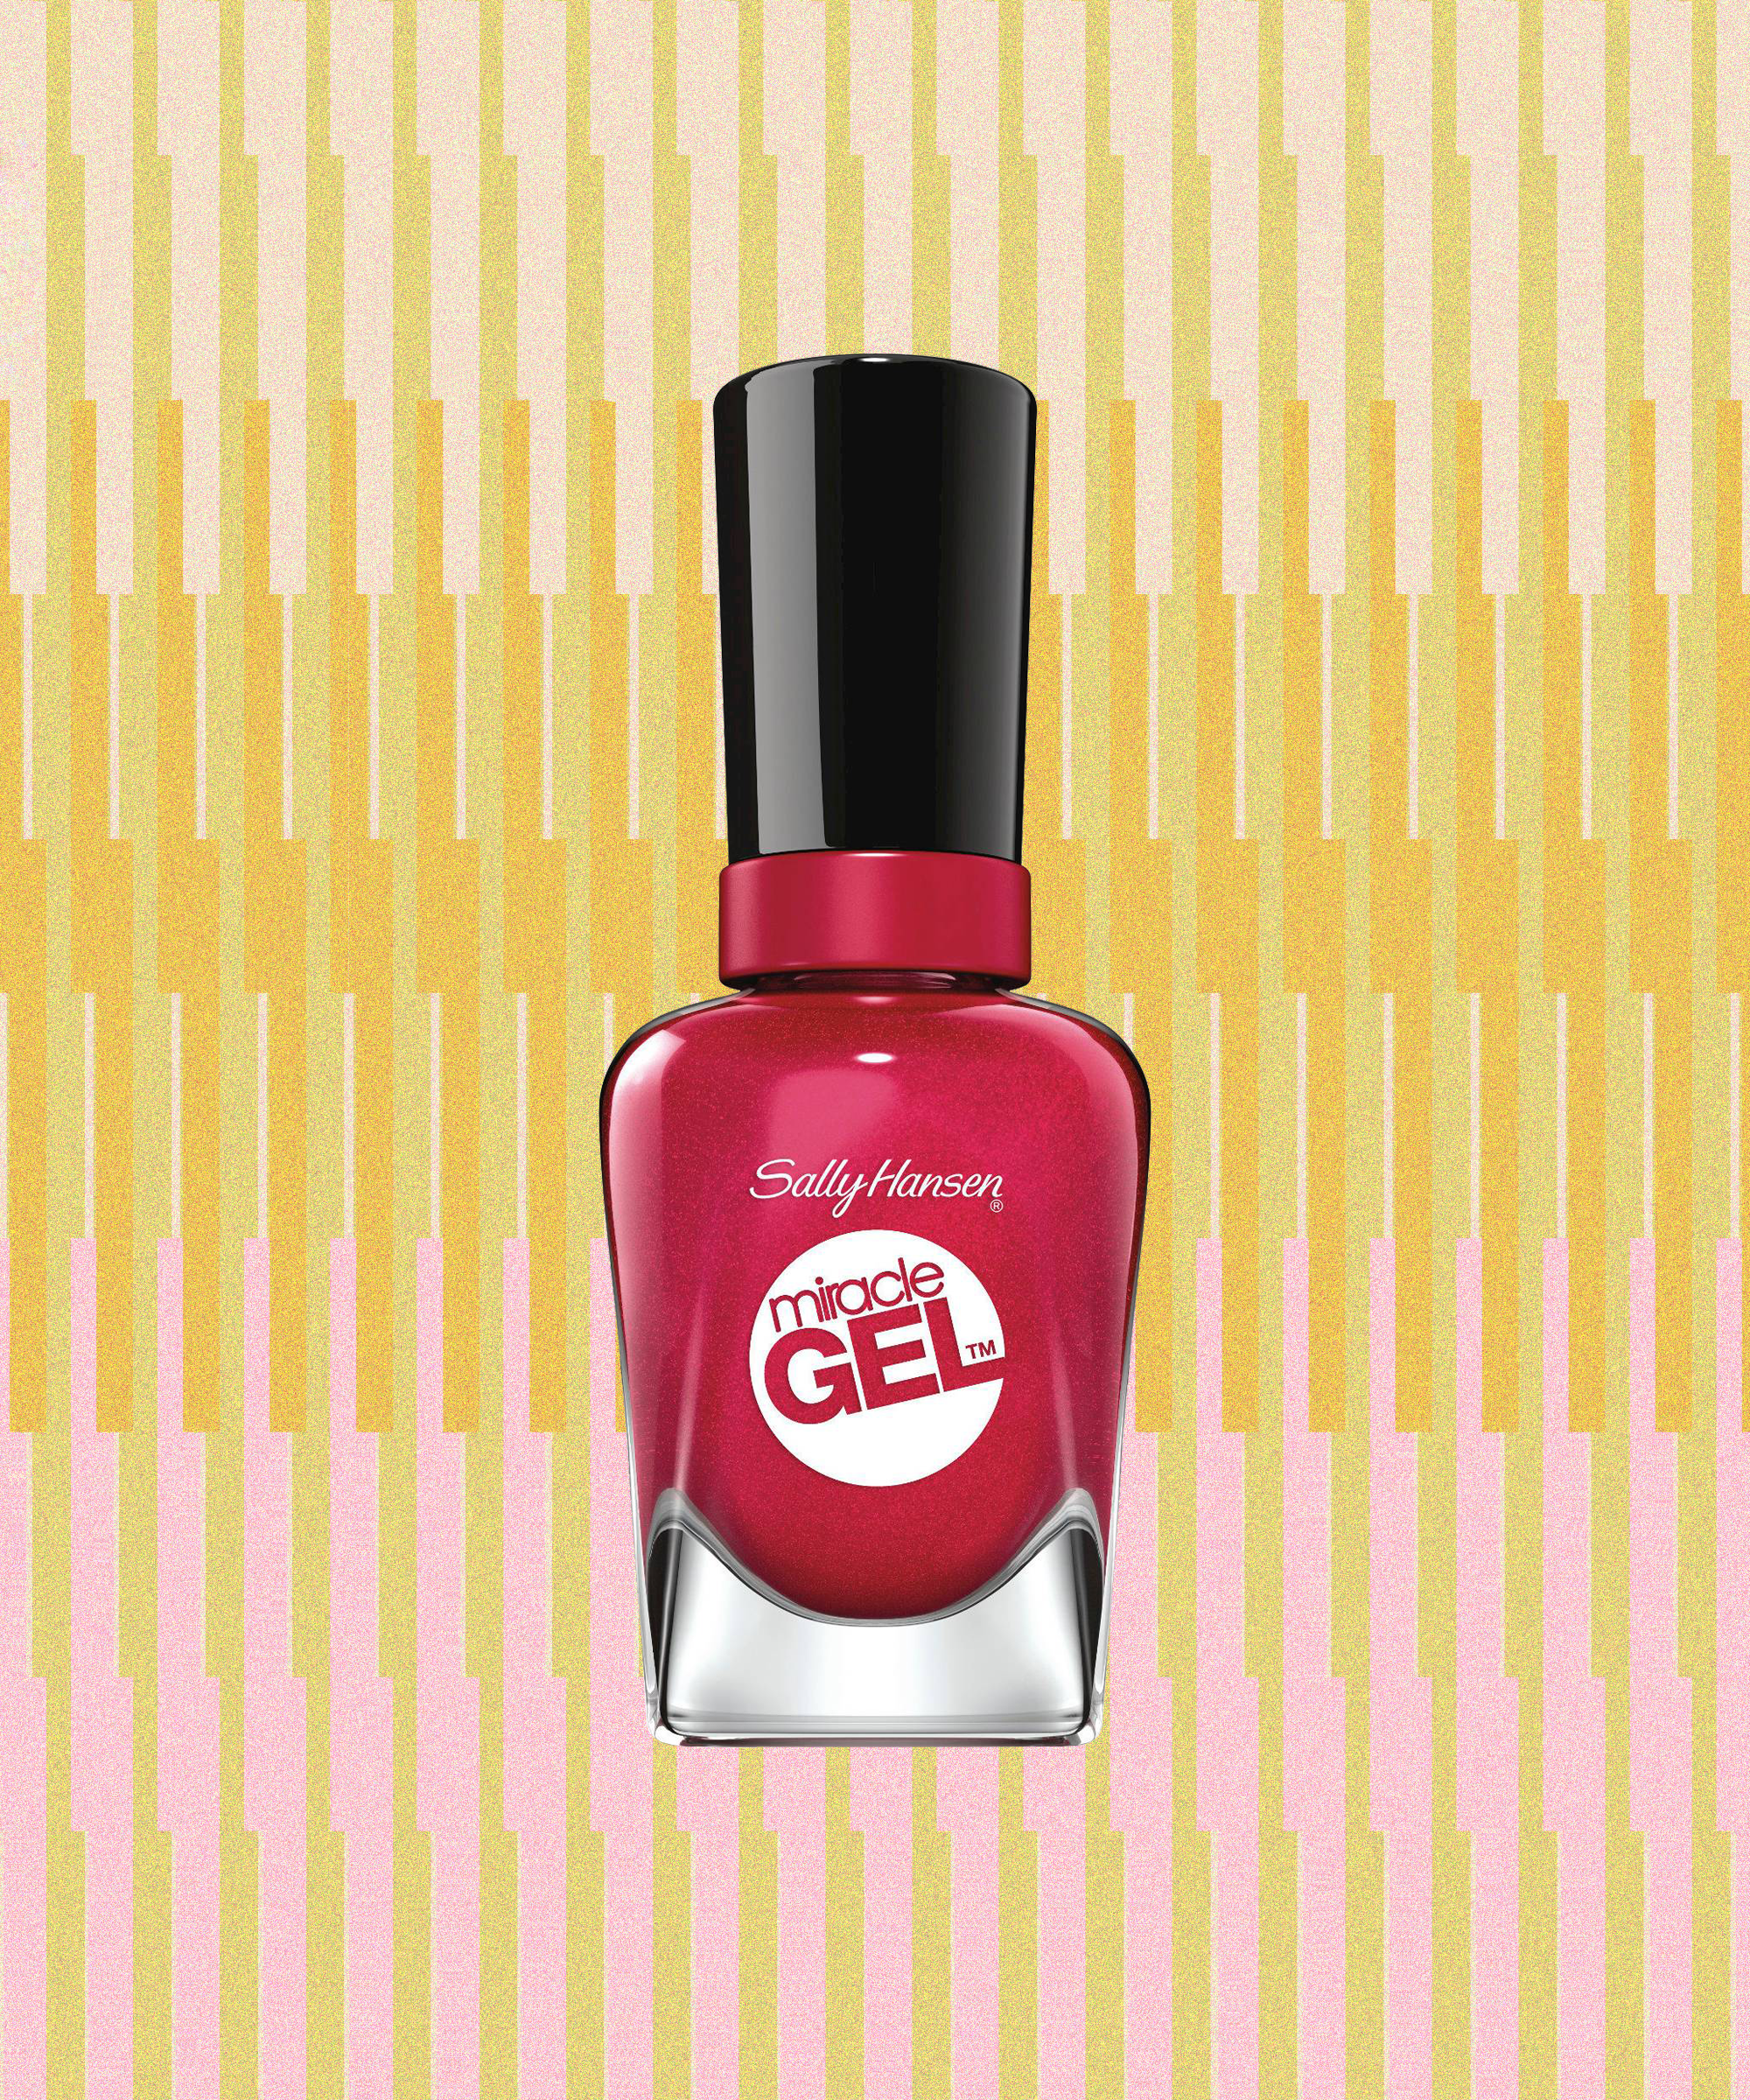 Sally Hansen Real Woman Brand History Who Is